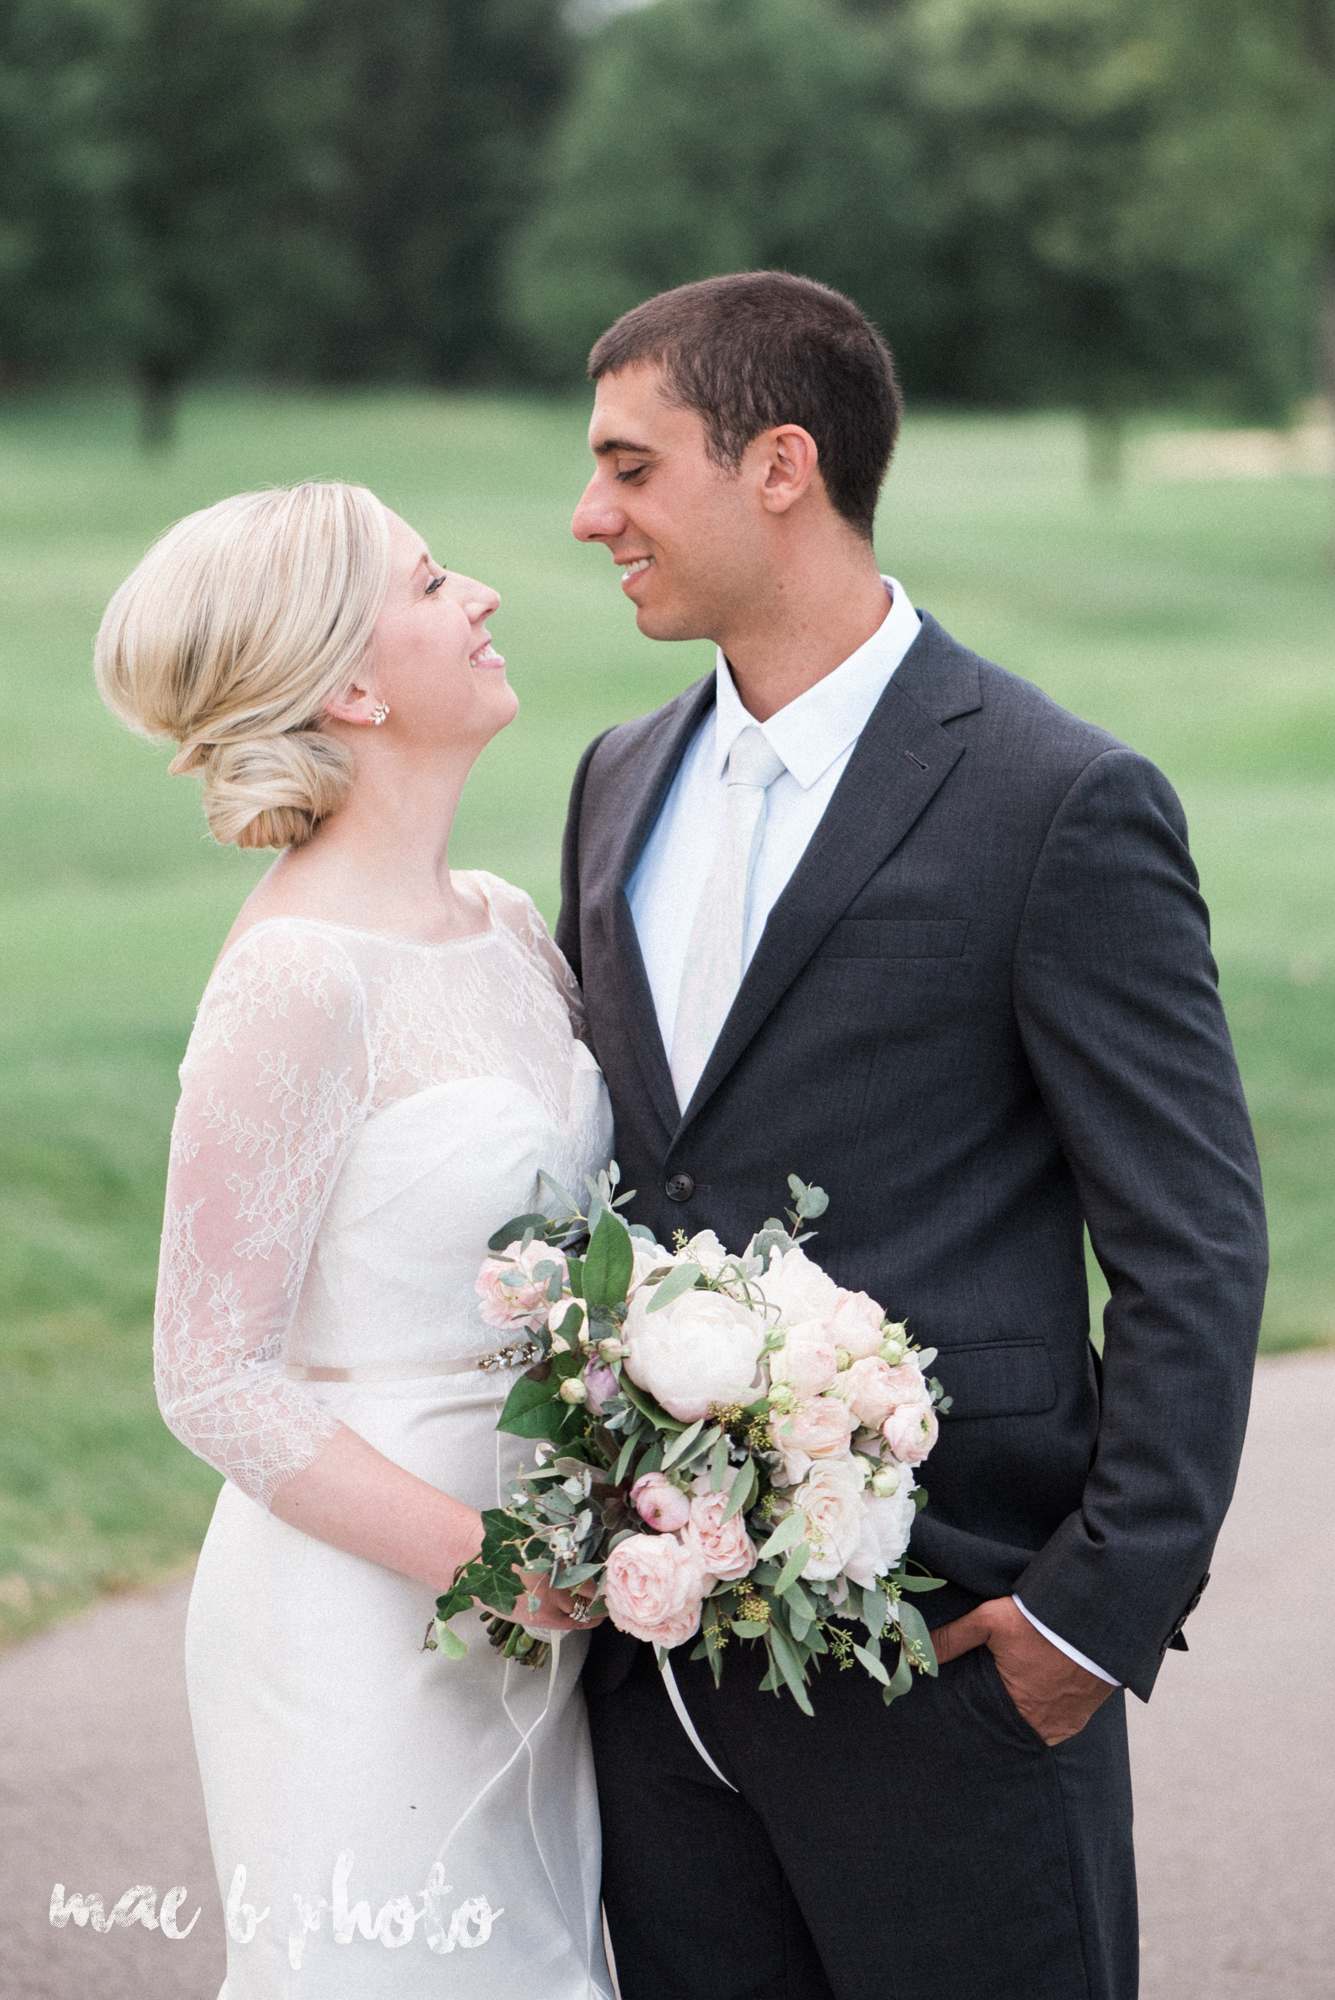 emily and michael's industrial chic summer country club wedding at the lake club in poland ohio photographed by cleveland wedding photographer mae b photo-61.jpg